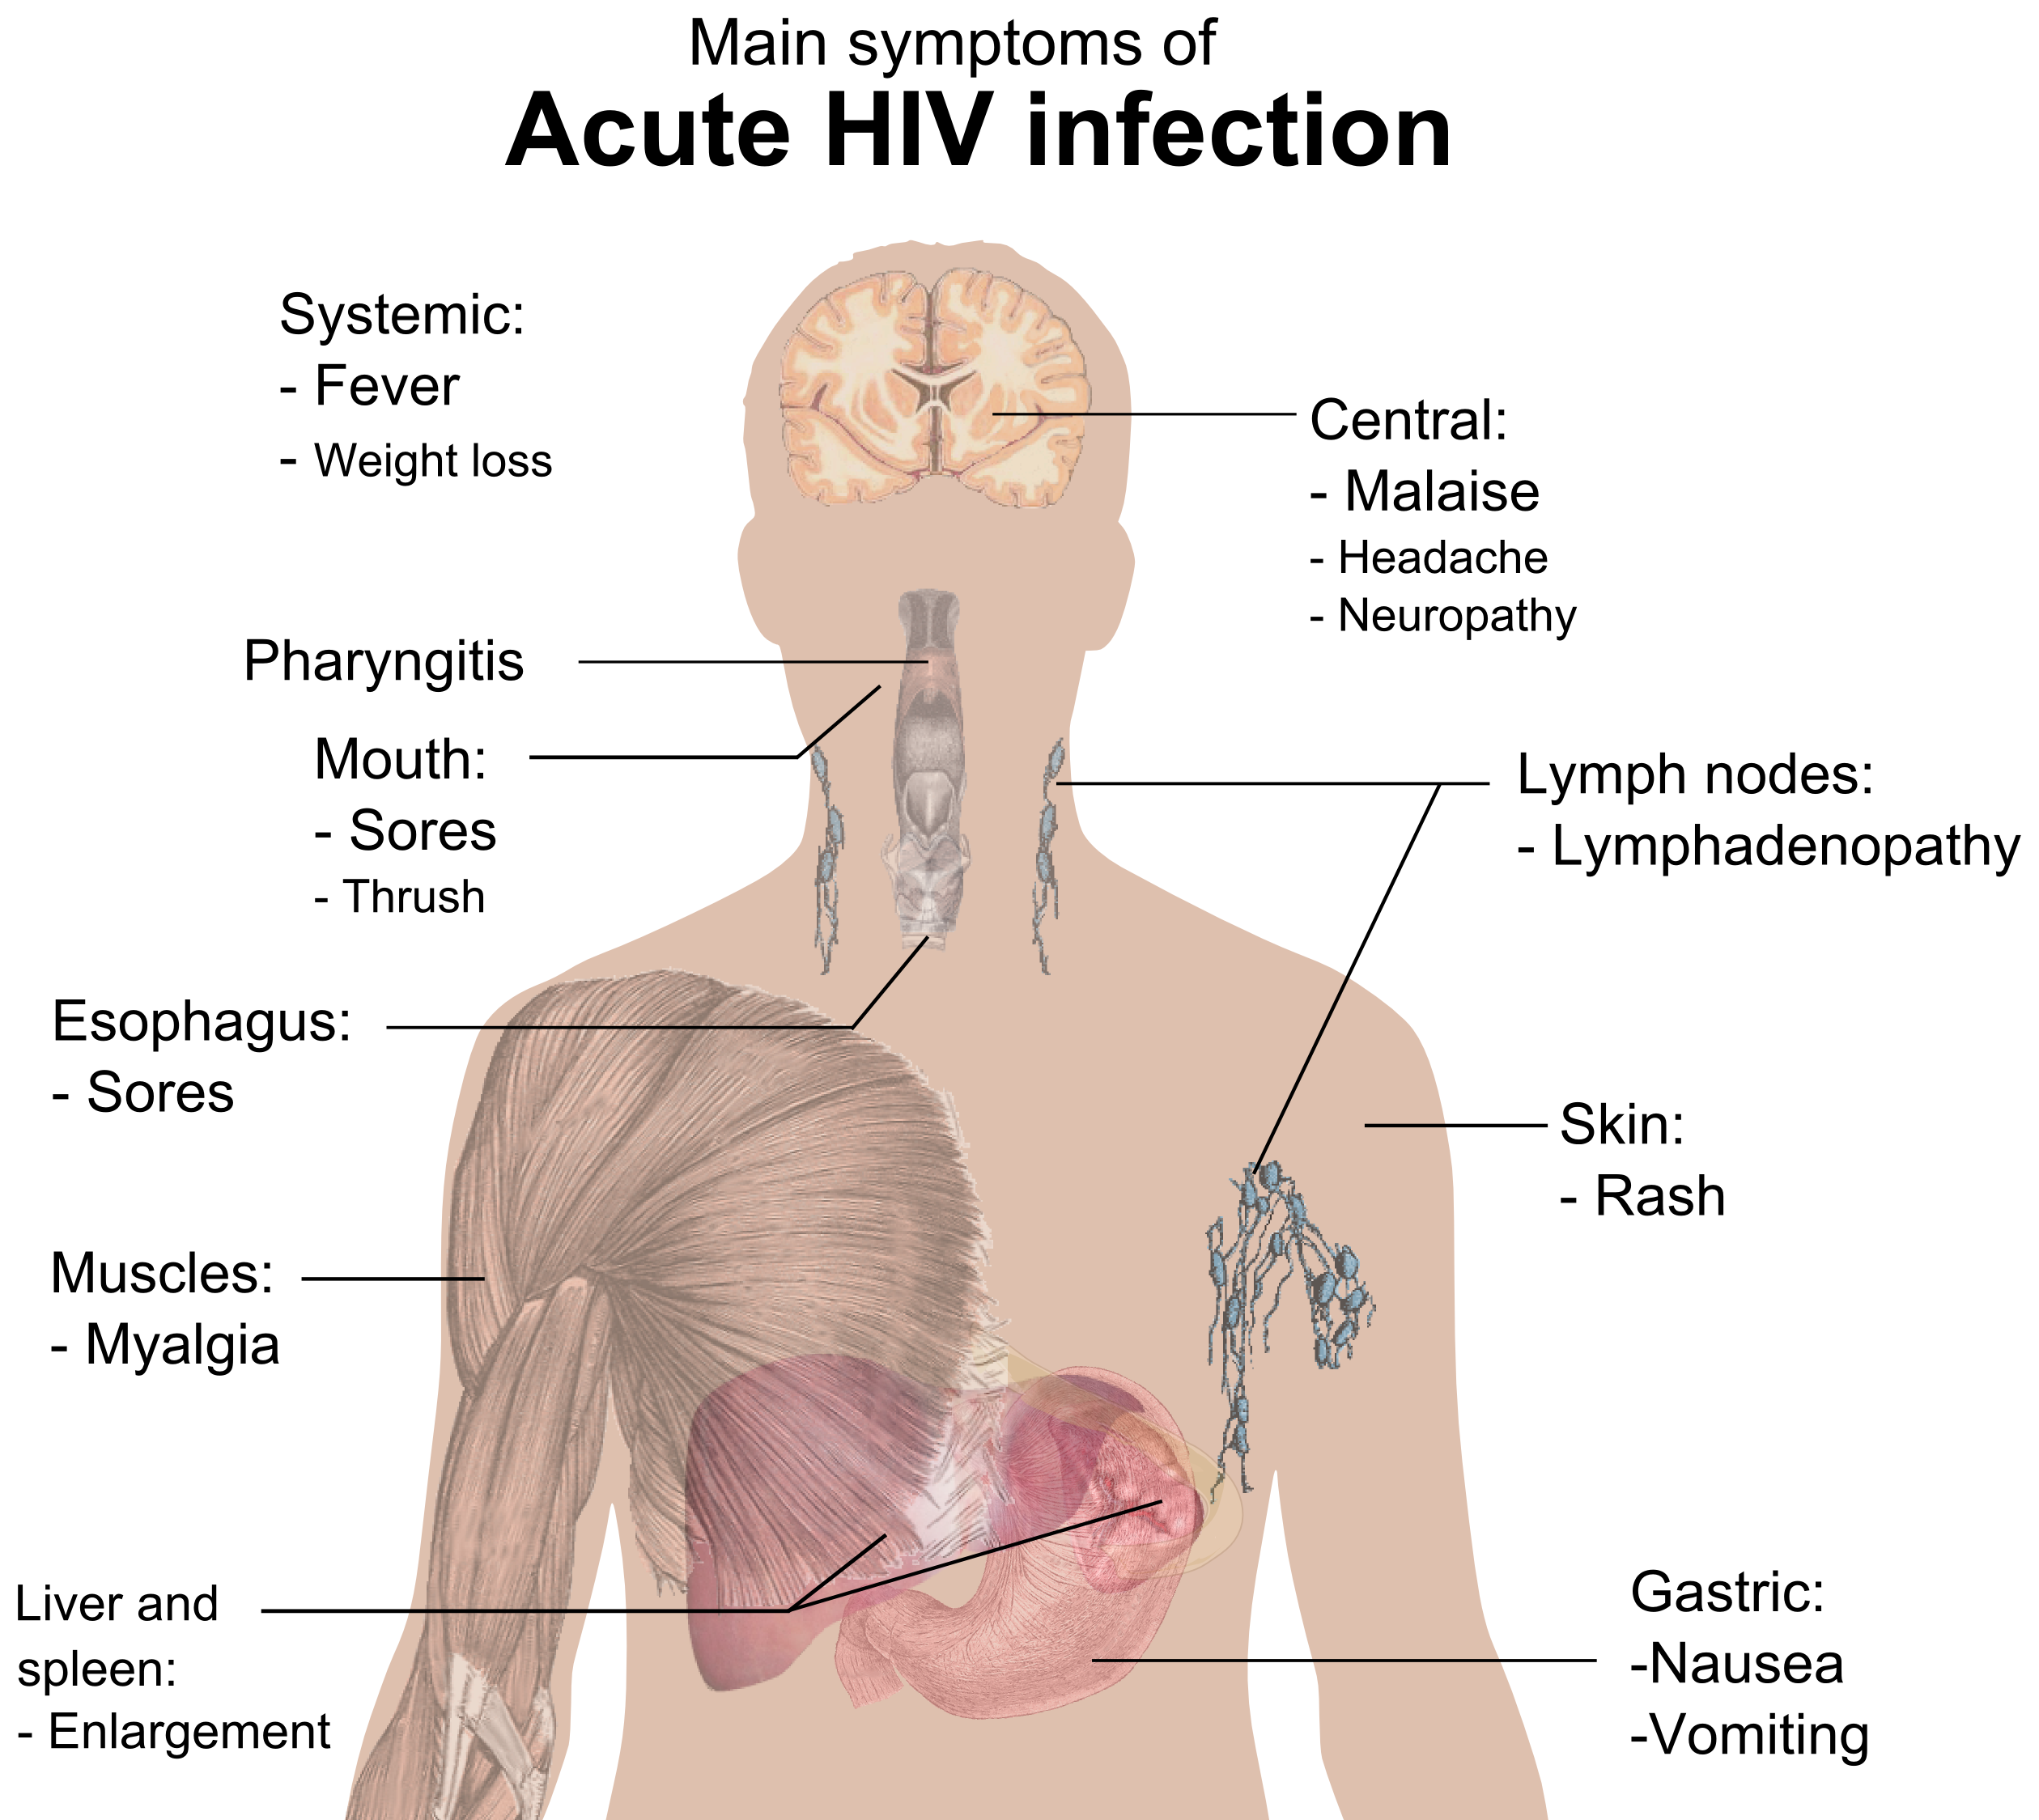 hiv signs and symptoms Hiv signs and symptoms - get tested at home with the most accurate hiv home test kit ships worldwide and nationwide in the philippines accurate hiv test.